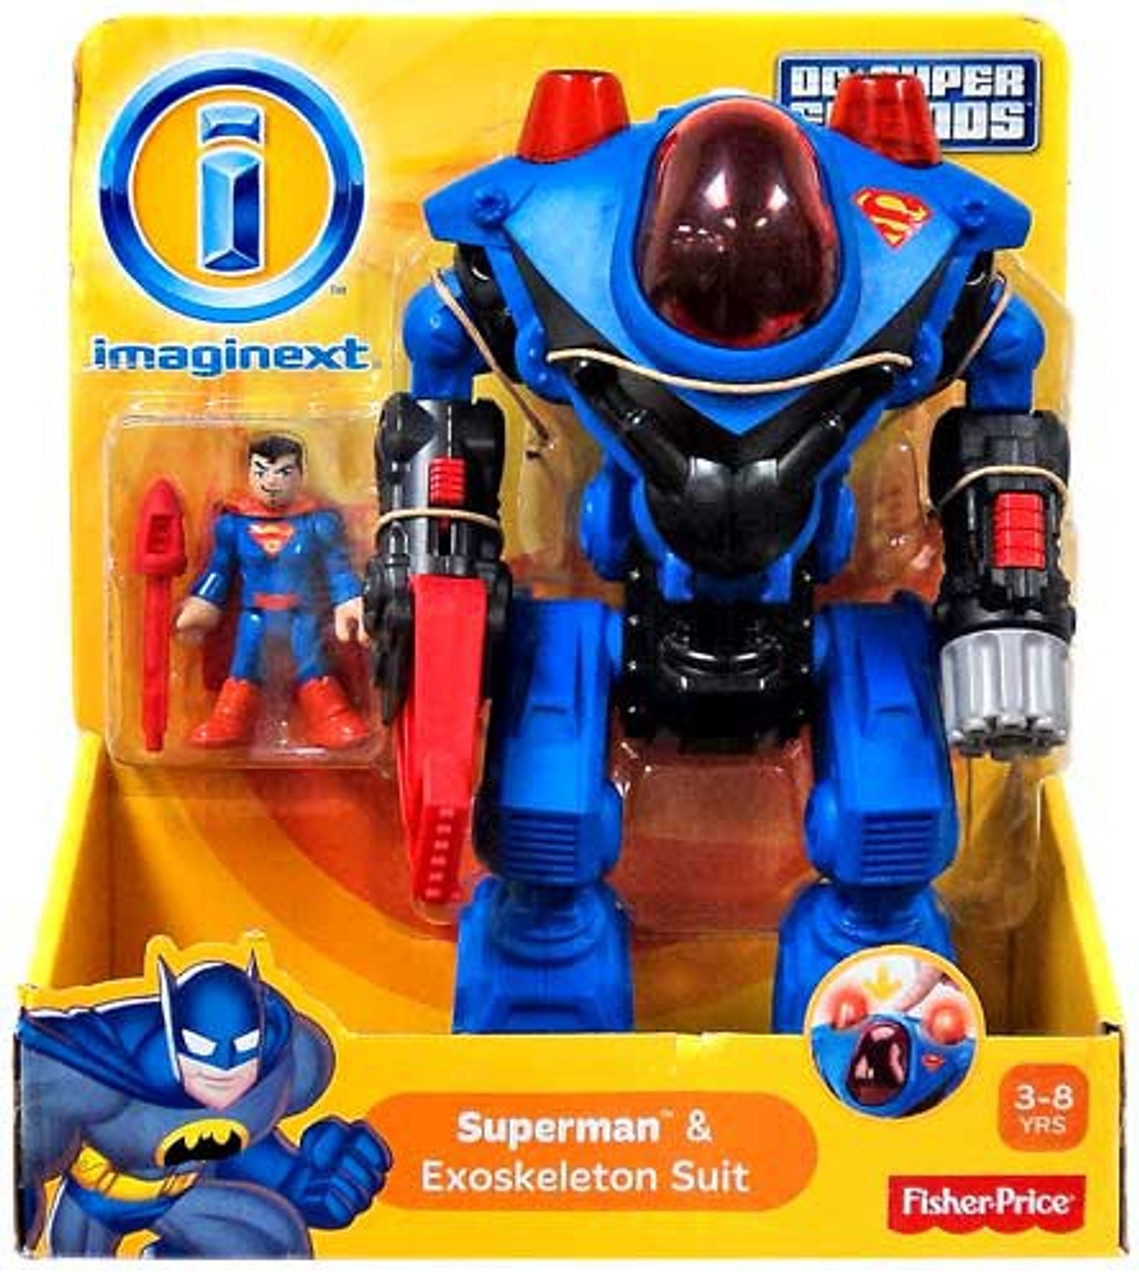 Fisher Price DC Super Friends Imaginext Superman & Exoskeleton Suit Exclusive 3-Inch Figure Set